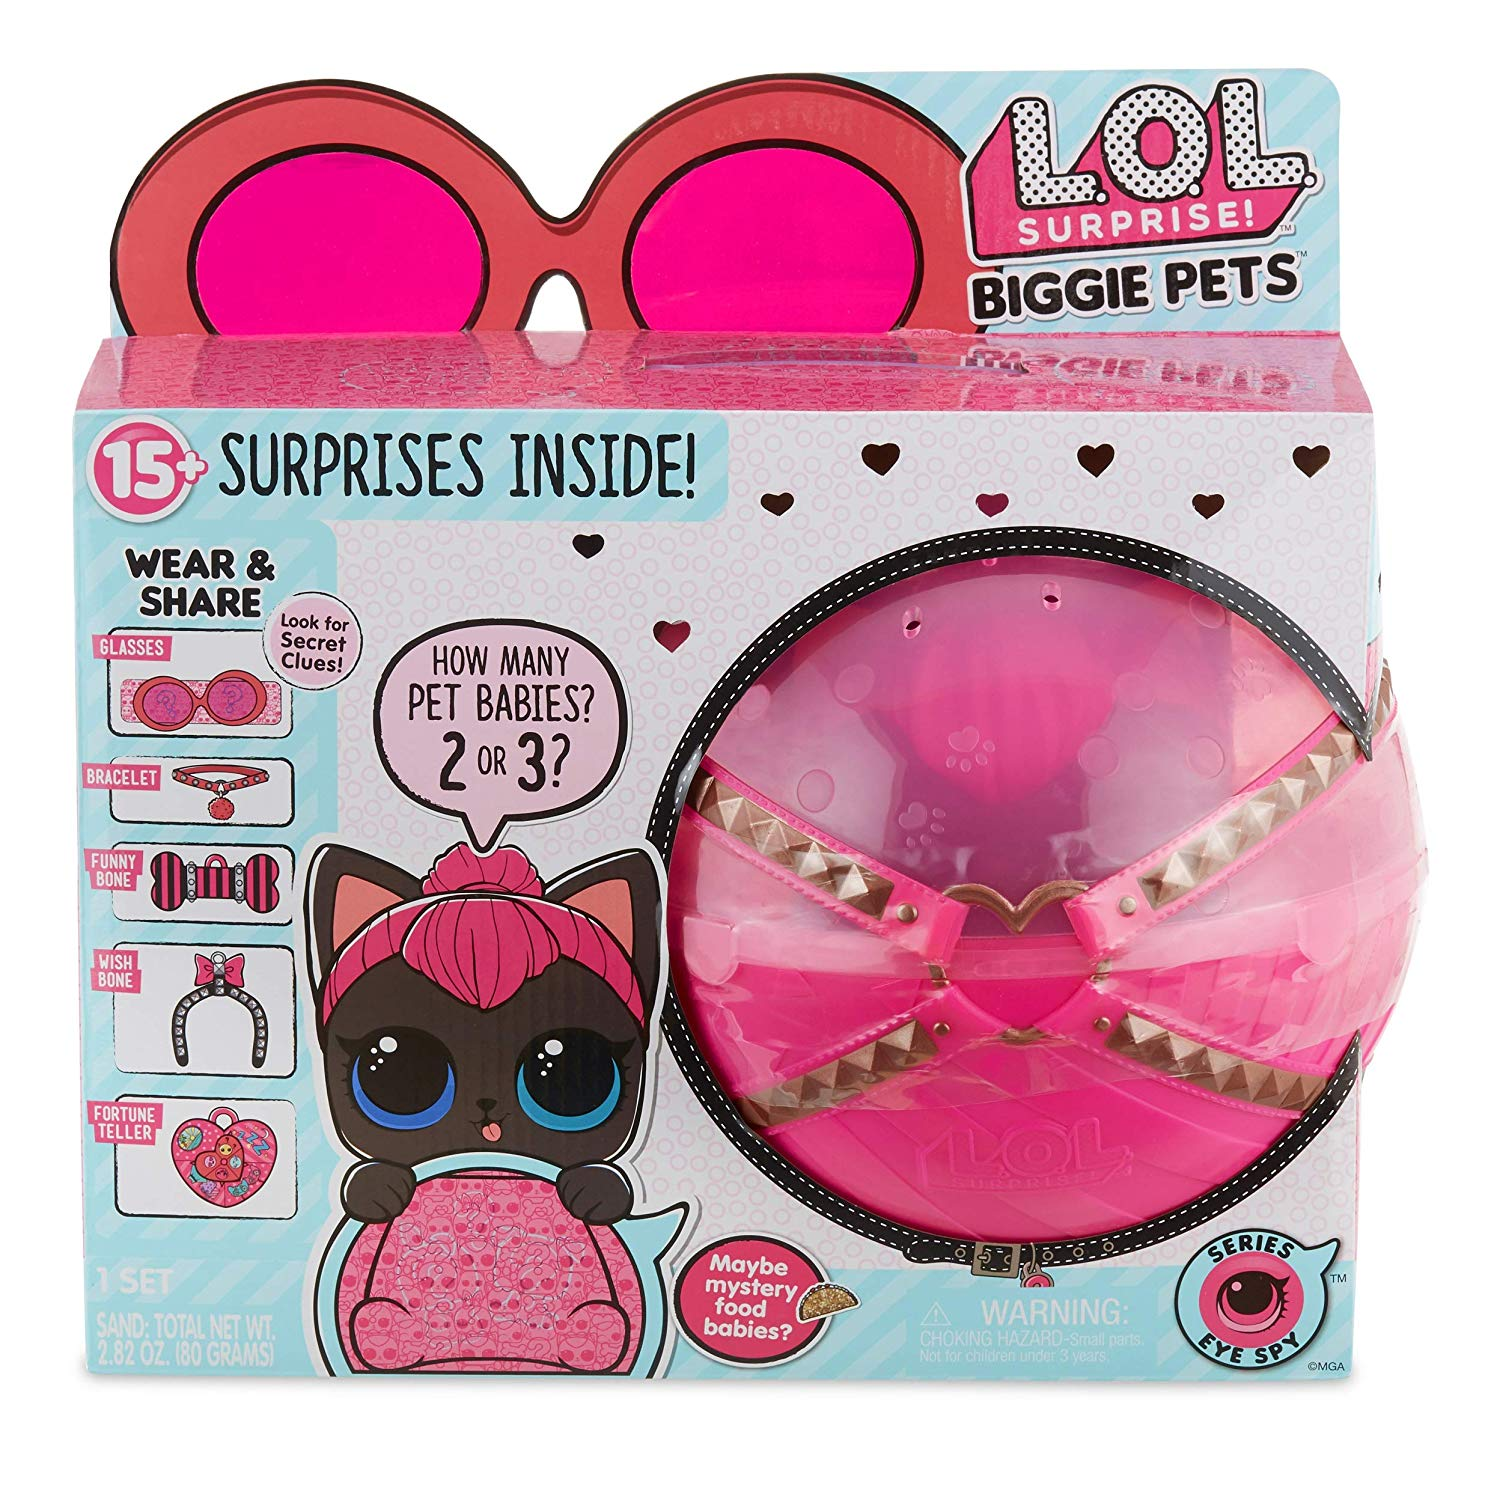 Save up to 65% on select L.O.L. Surprise!